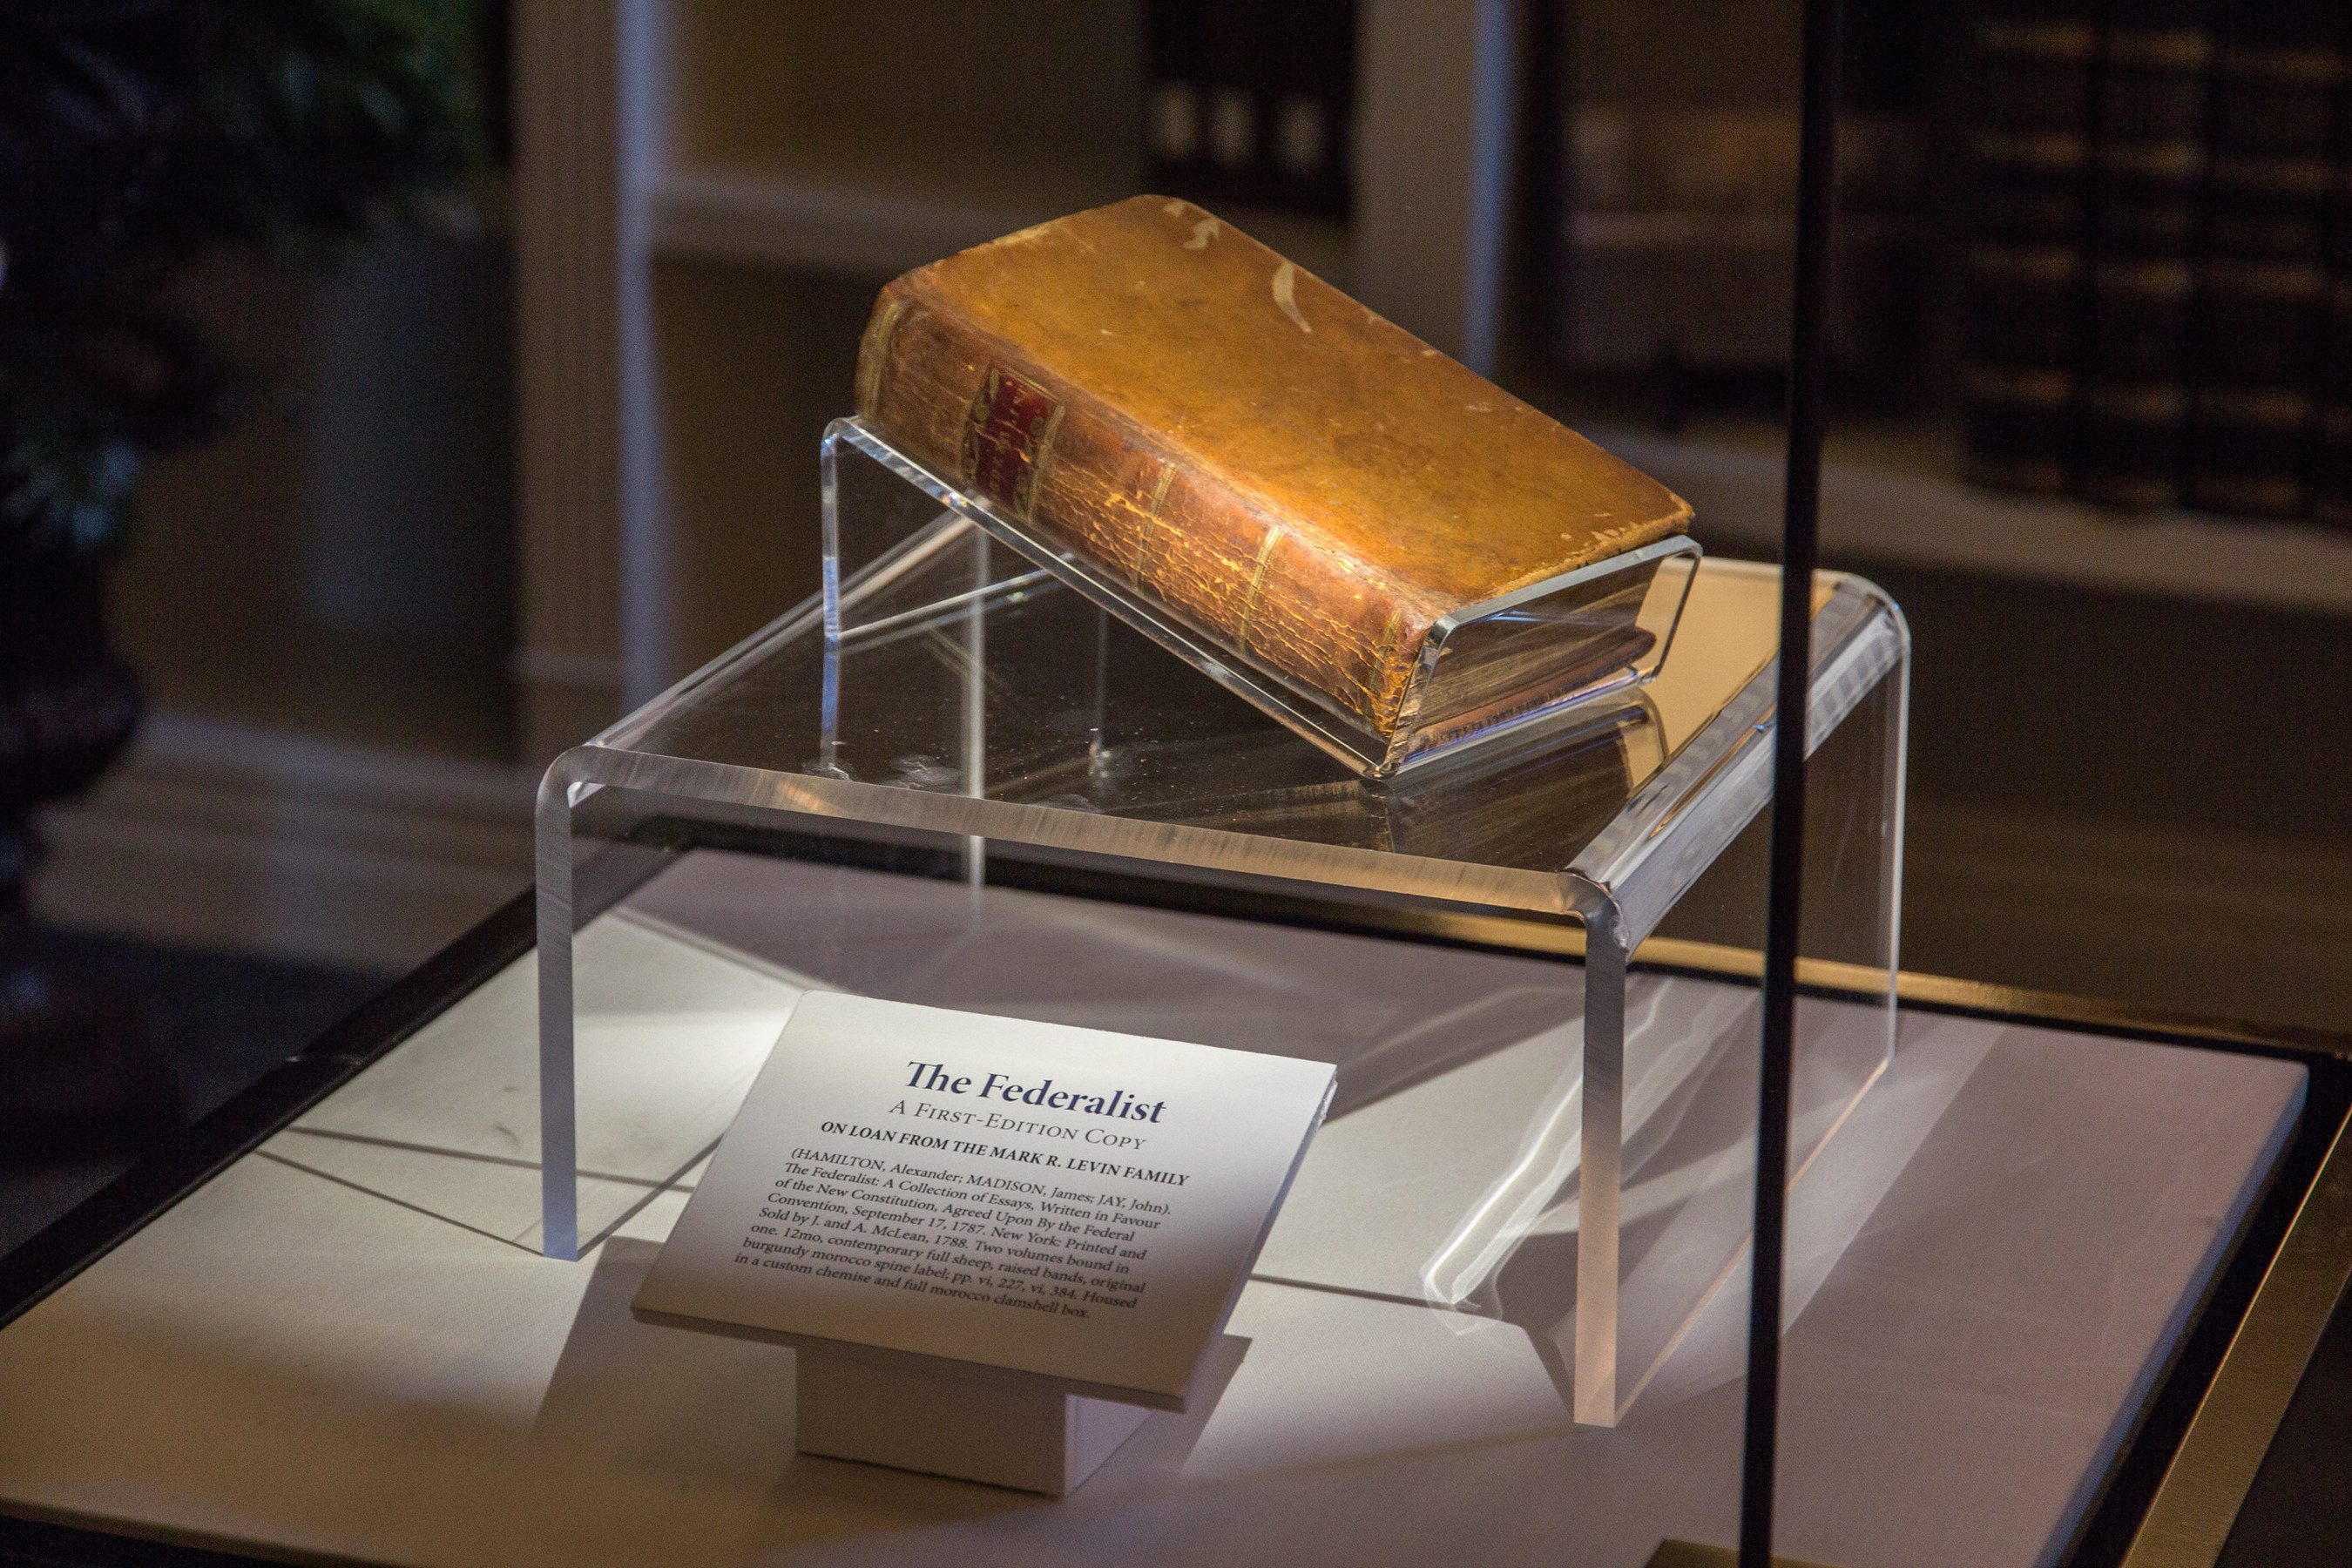 A rare, first edition copy of the Federalist Papers resides at Hillsdale College's Allan P. Kirby, Jr. Center for Constitutional Studies and Citizenship in Washington, D.C. Viewings are from 9 a.m. to 5 p.m. on weekdays.